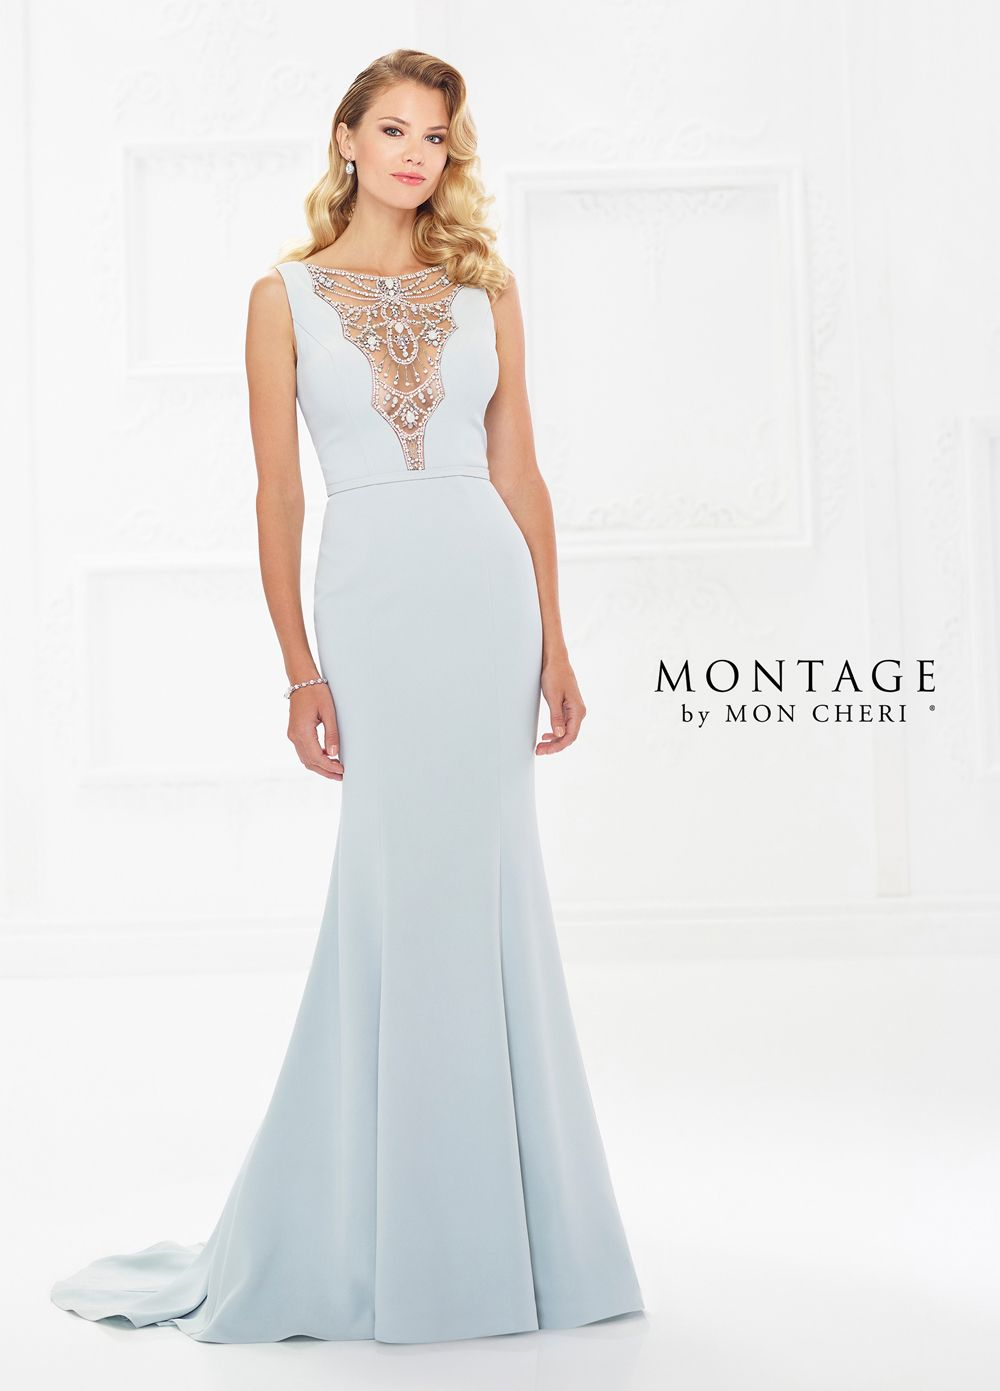 Mon cheri wedding dresses  Montage by Mon Cheri  BateauNeck Formal Gown  Mother of